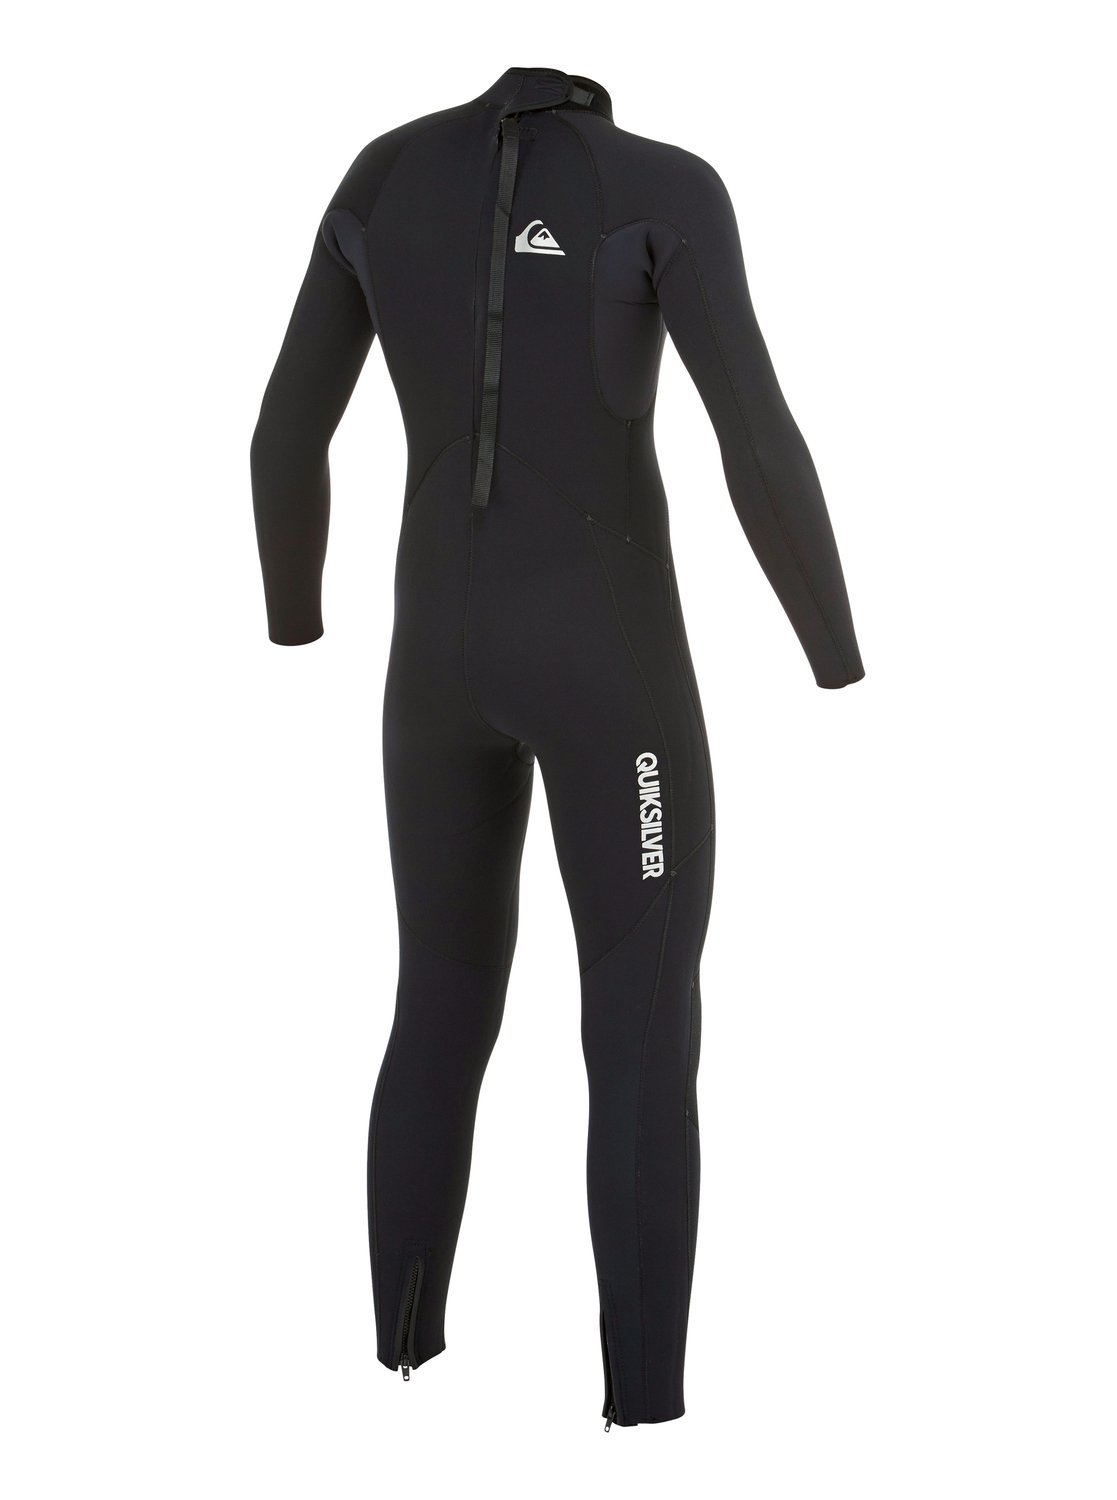 128b6038bc Amazon.com  Quiksilver 5 4 3mm Kid s   Junior s Syncro Base Fullsuit -  Black